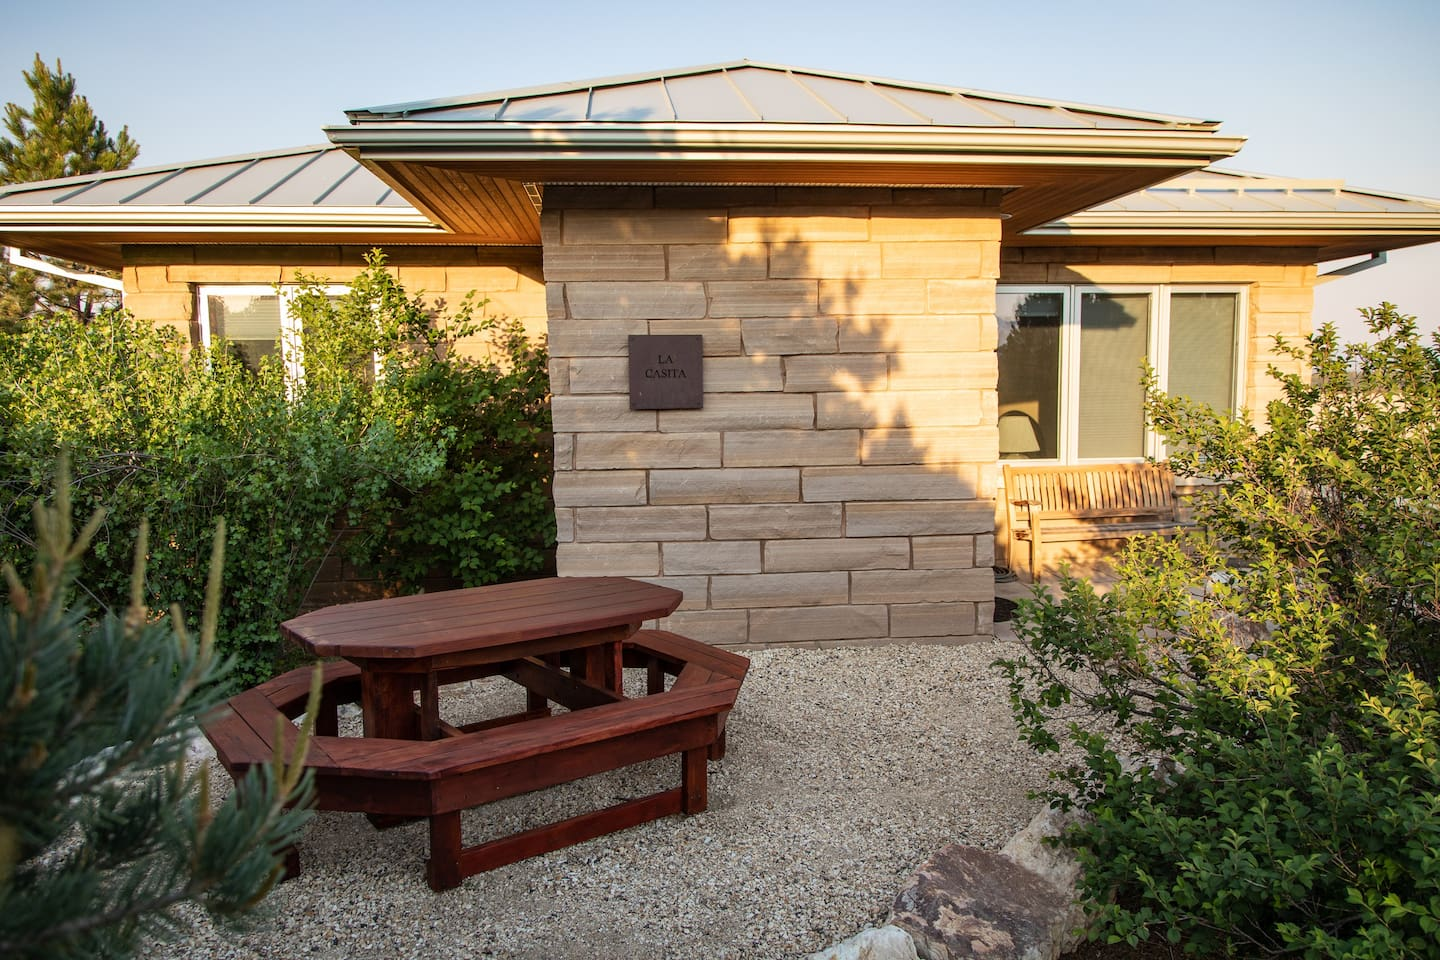 """""""La Casita"""" is what we call this luxurious guest house. West facing elevation shown."""